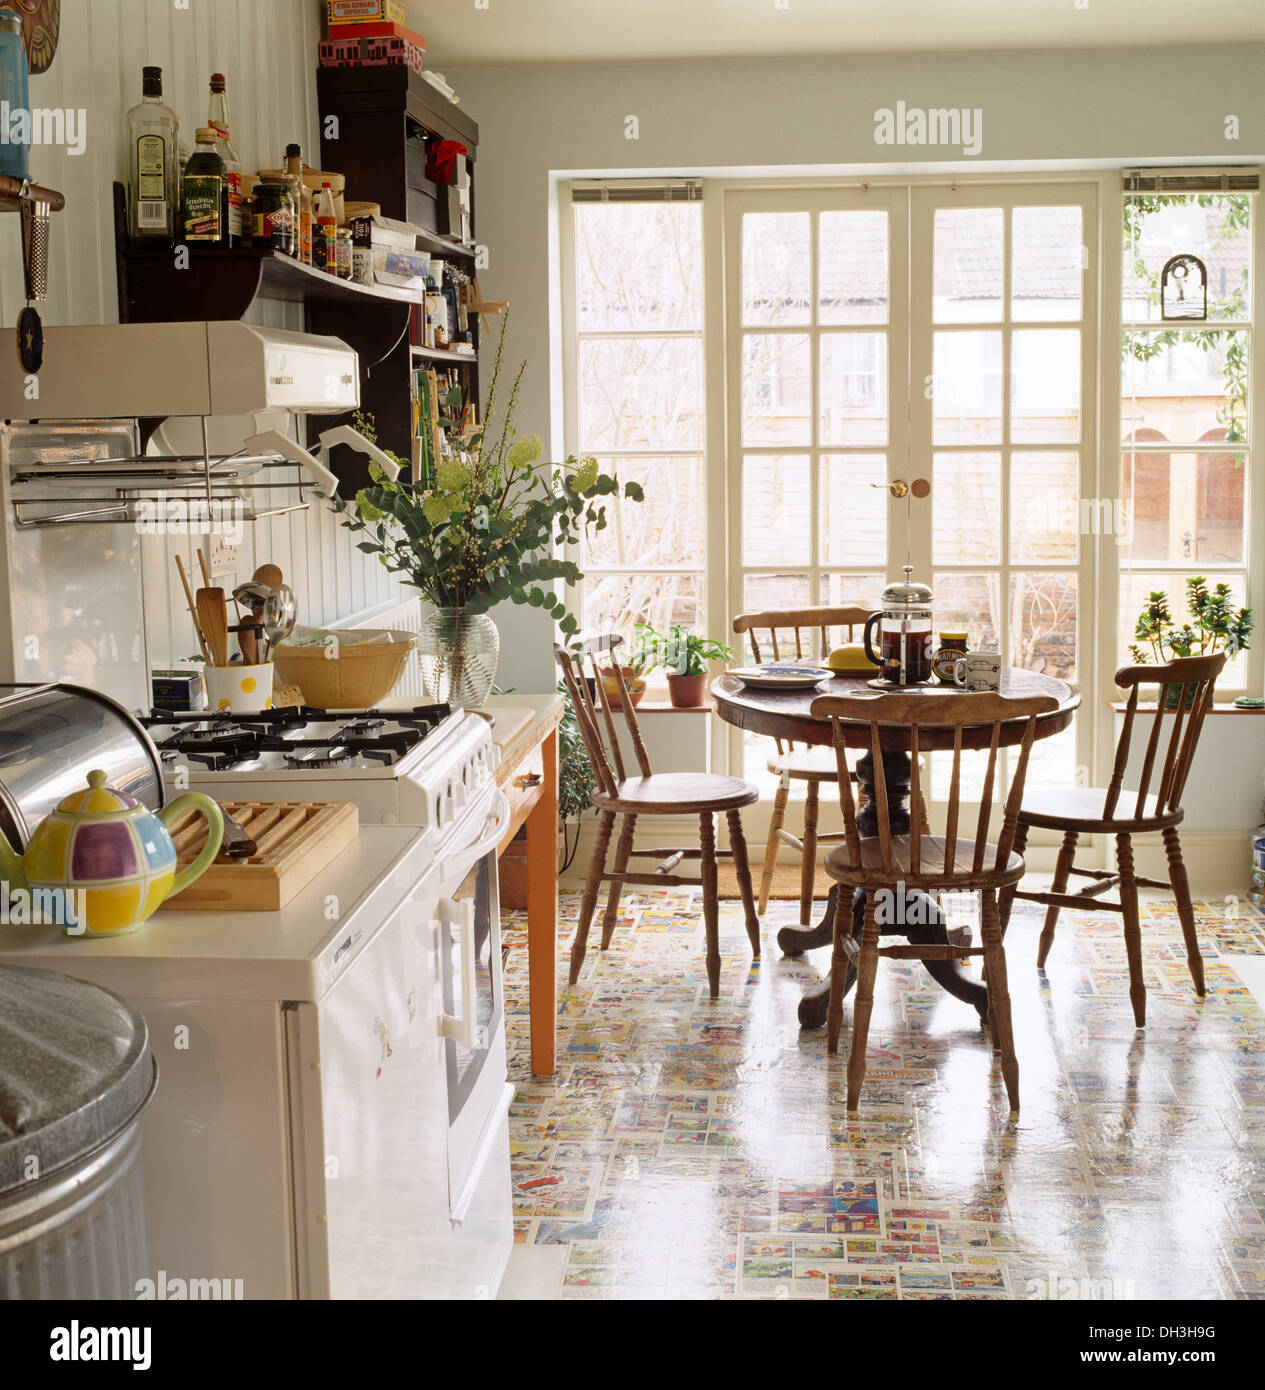 Colorful Flooring And Gas Oven In Kitchen Dining Room With Circular Stock Photo Alamy